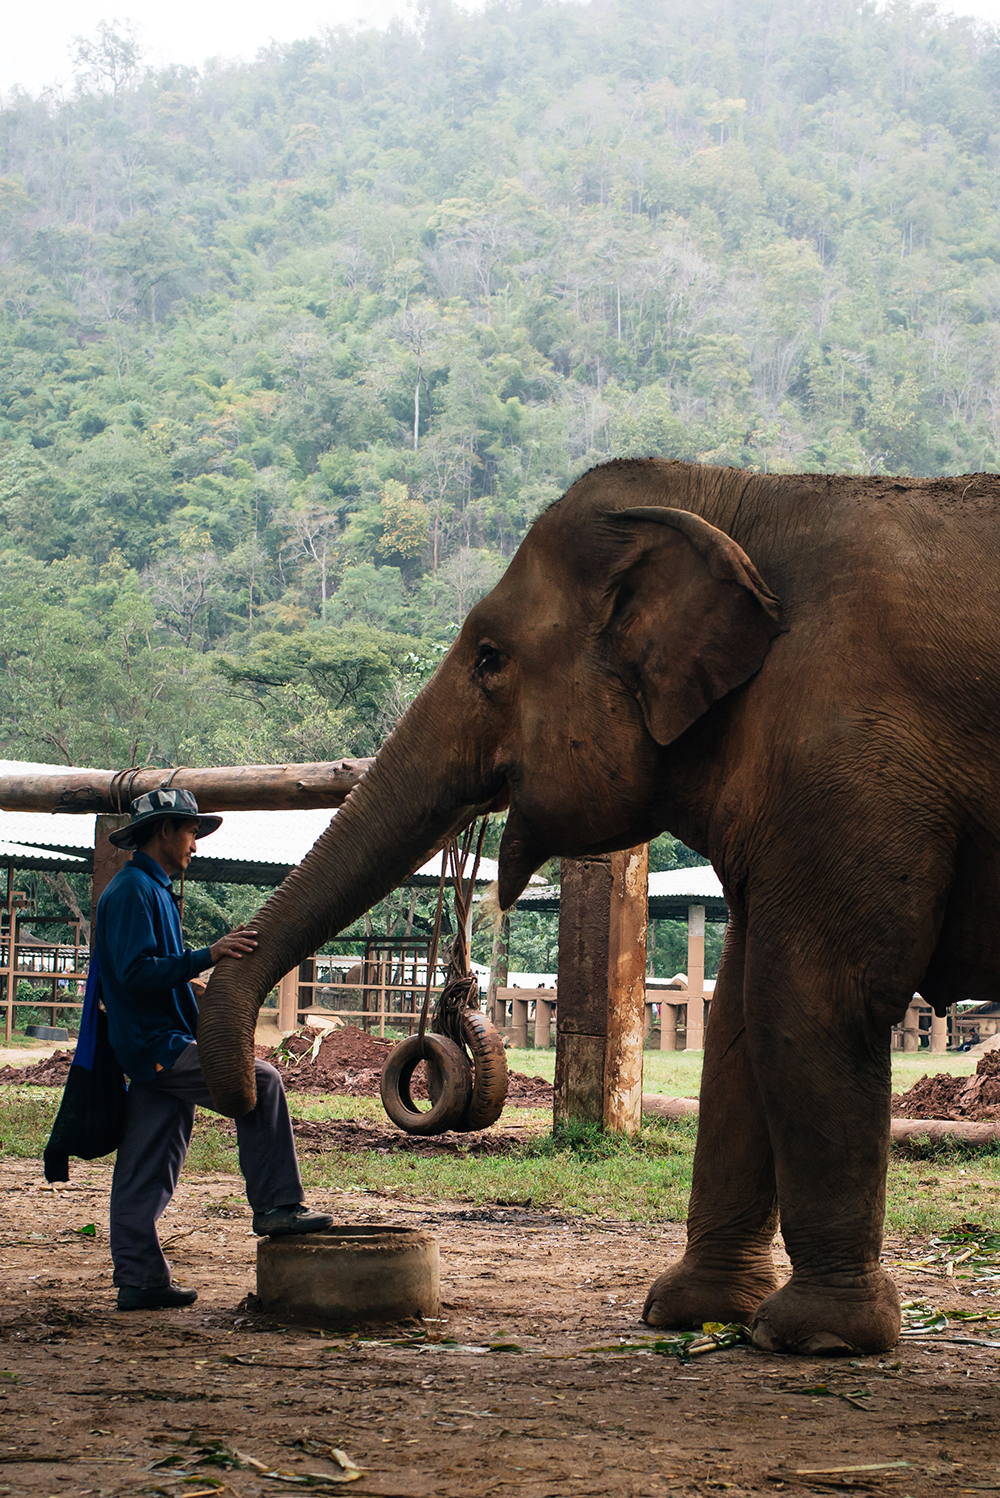 Keeper at Elephant Nature Park rescue and sanctuary Chiang Mai Thailand.